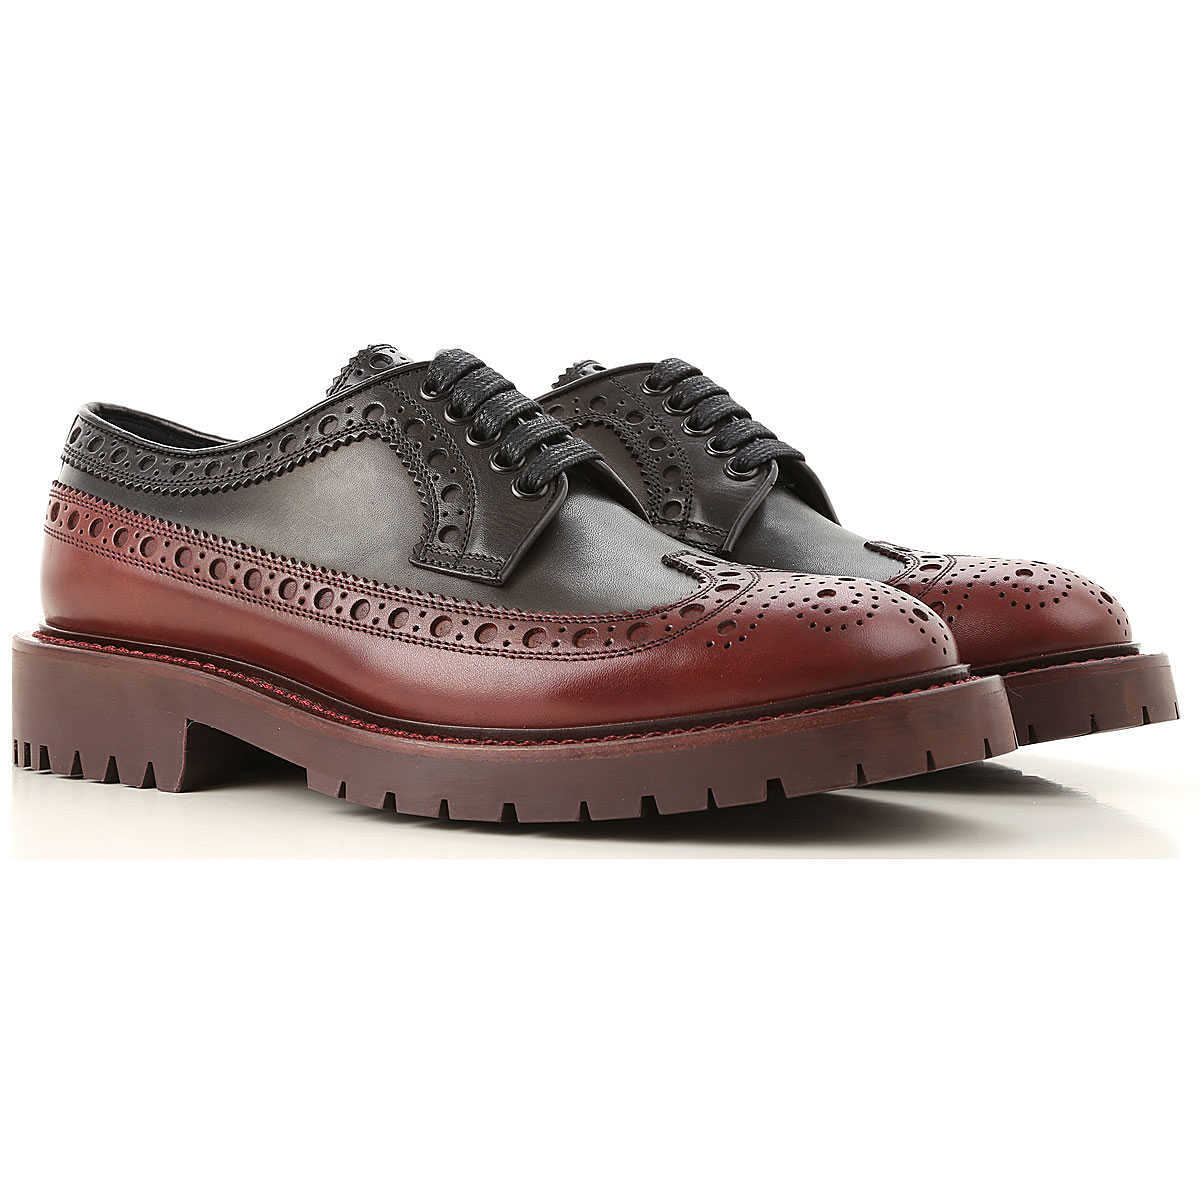 Burberry Lace Up Shoes for Men Oxfords Derbies and Brogues On Sale DK - GOOFASH - Mens FORMAL SHOES